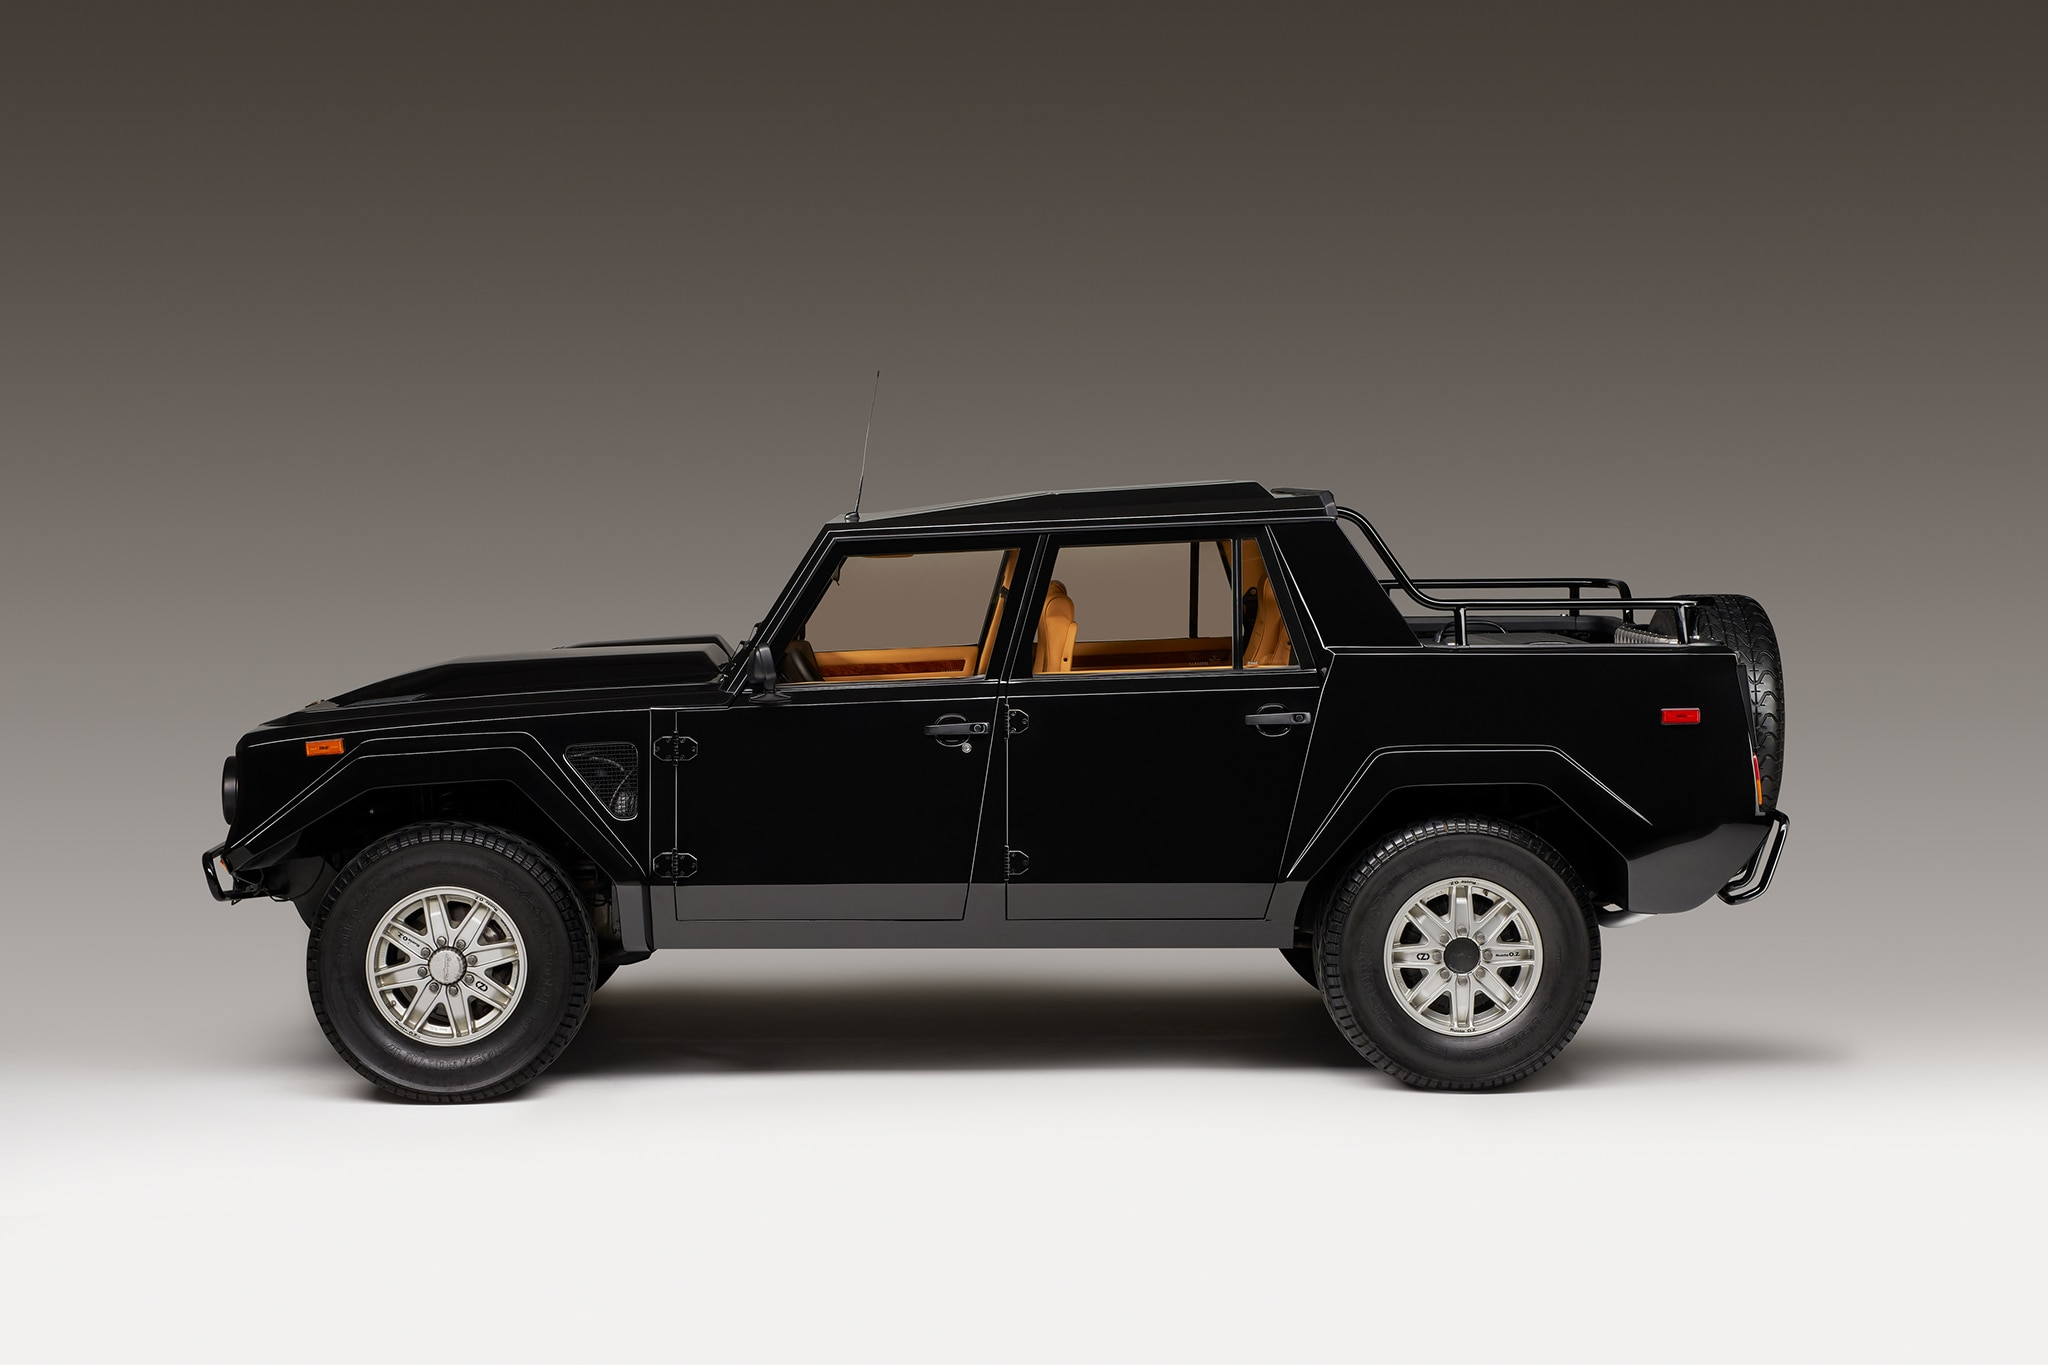 http://st.automobilemag.com/uploads/sites/5/2017/10/Lamborghini-LM002-side-profile.jpg